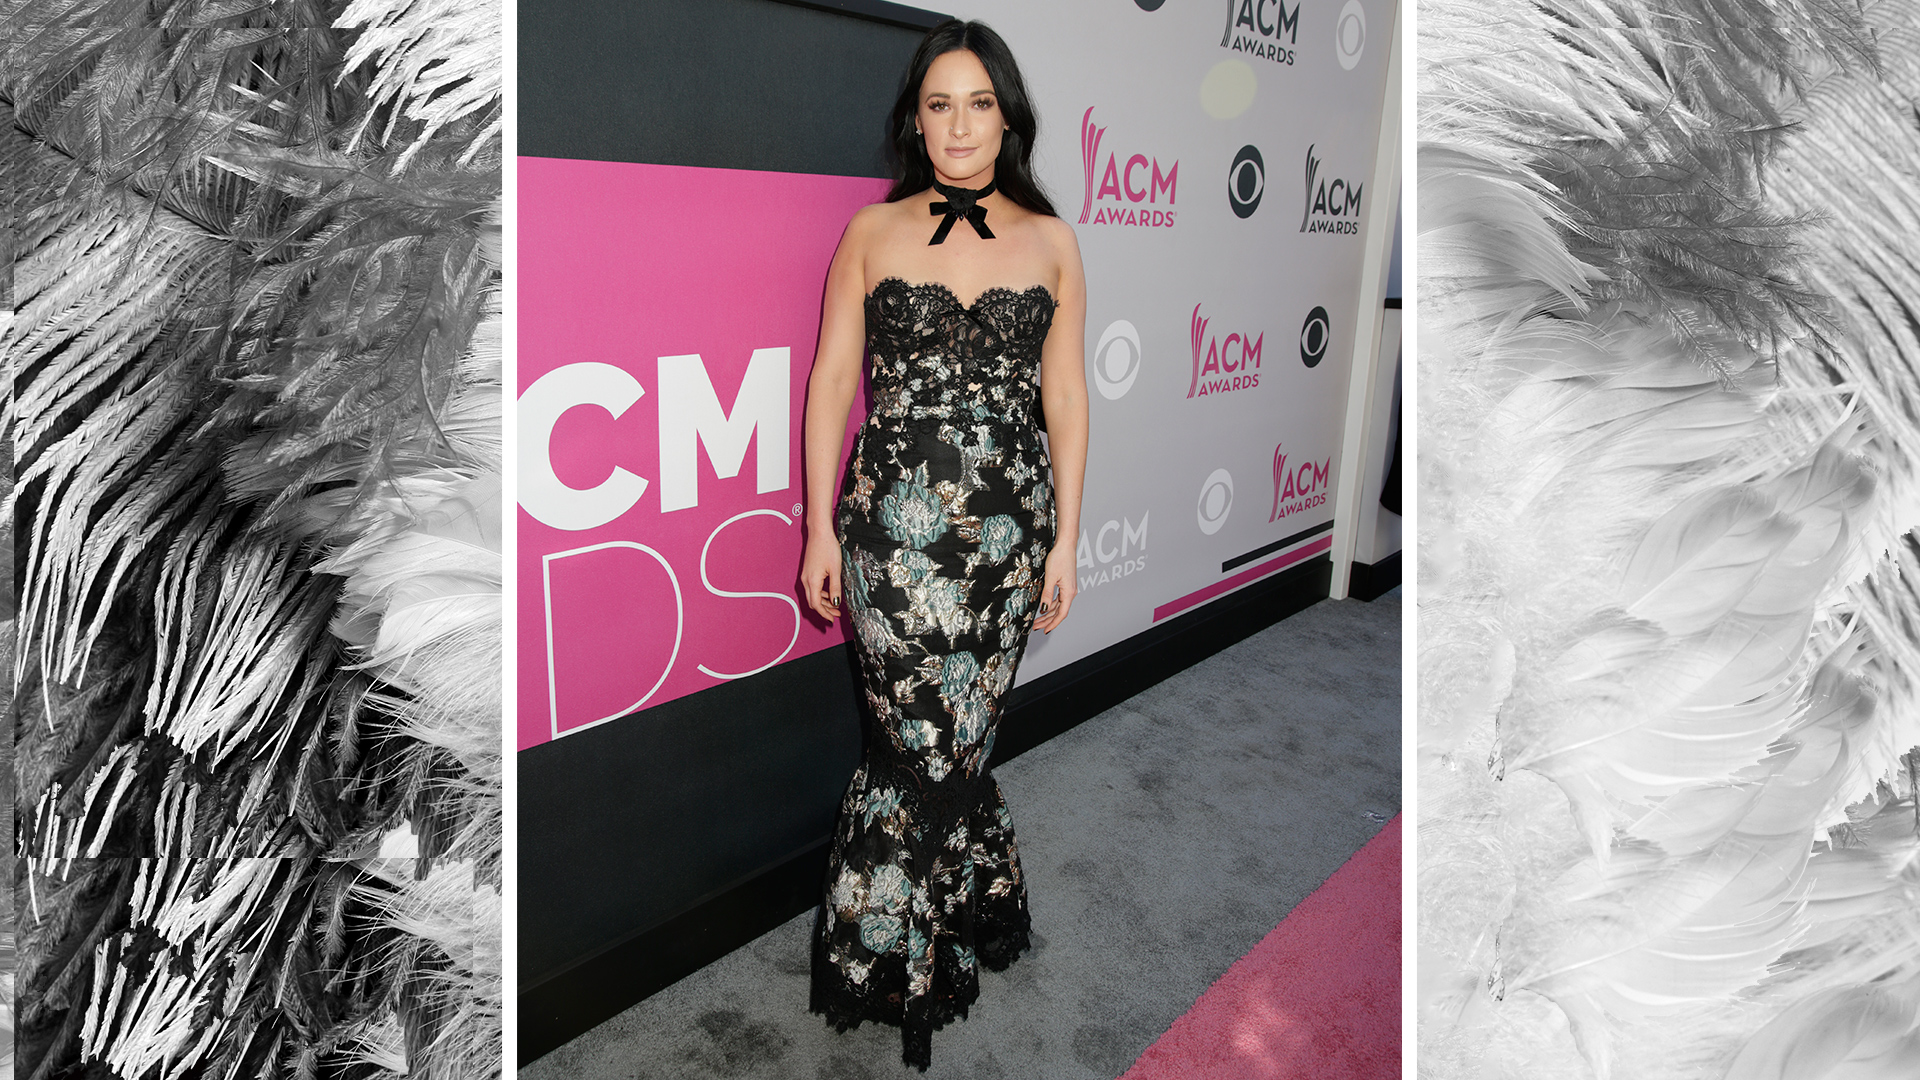 Kacey Musgraves poses on the red carpet in a gorgeous floral gown with lace accents.